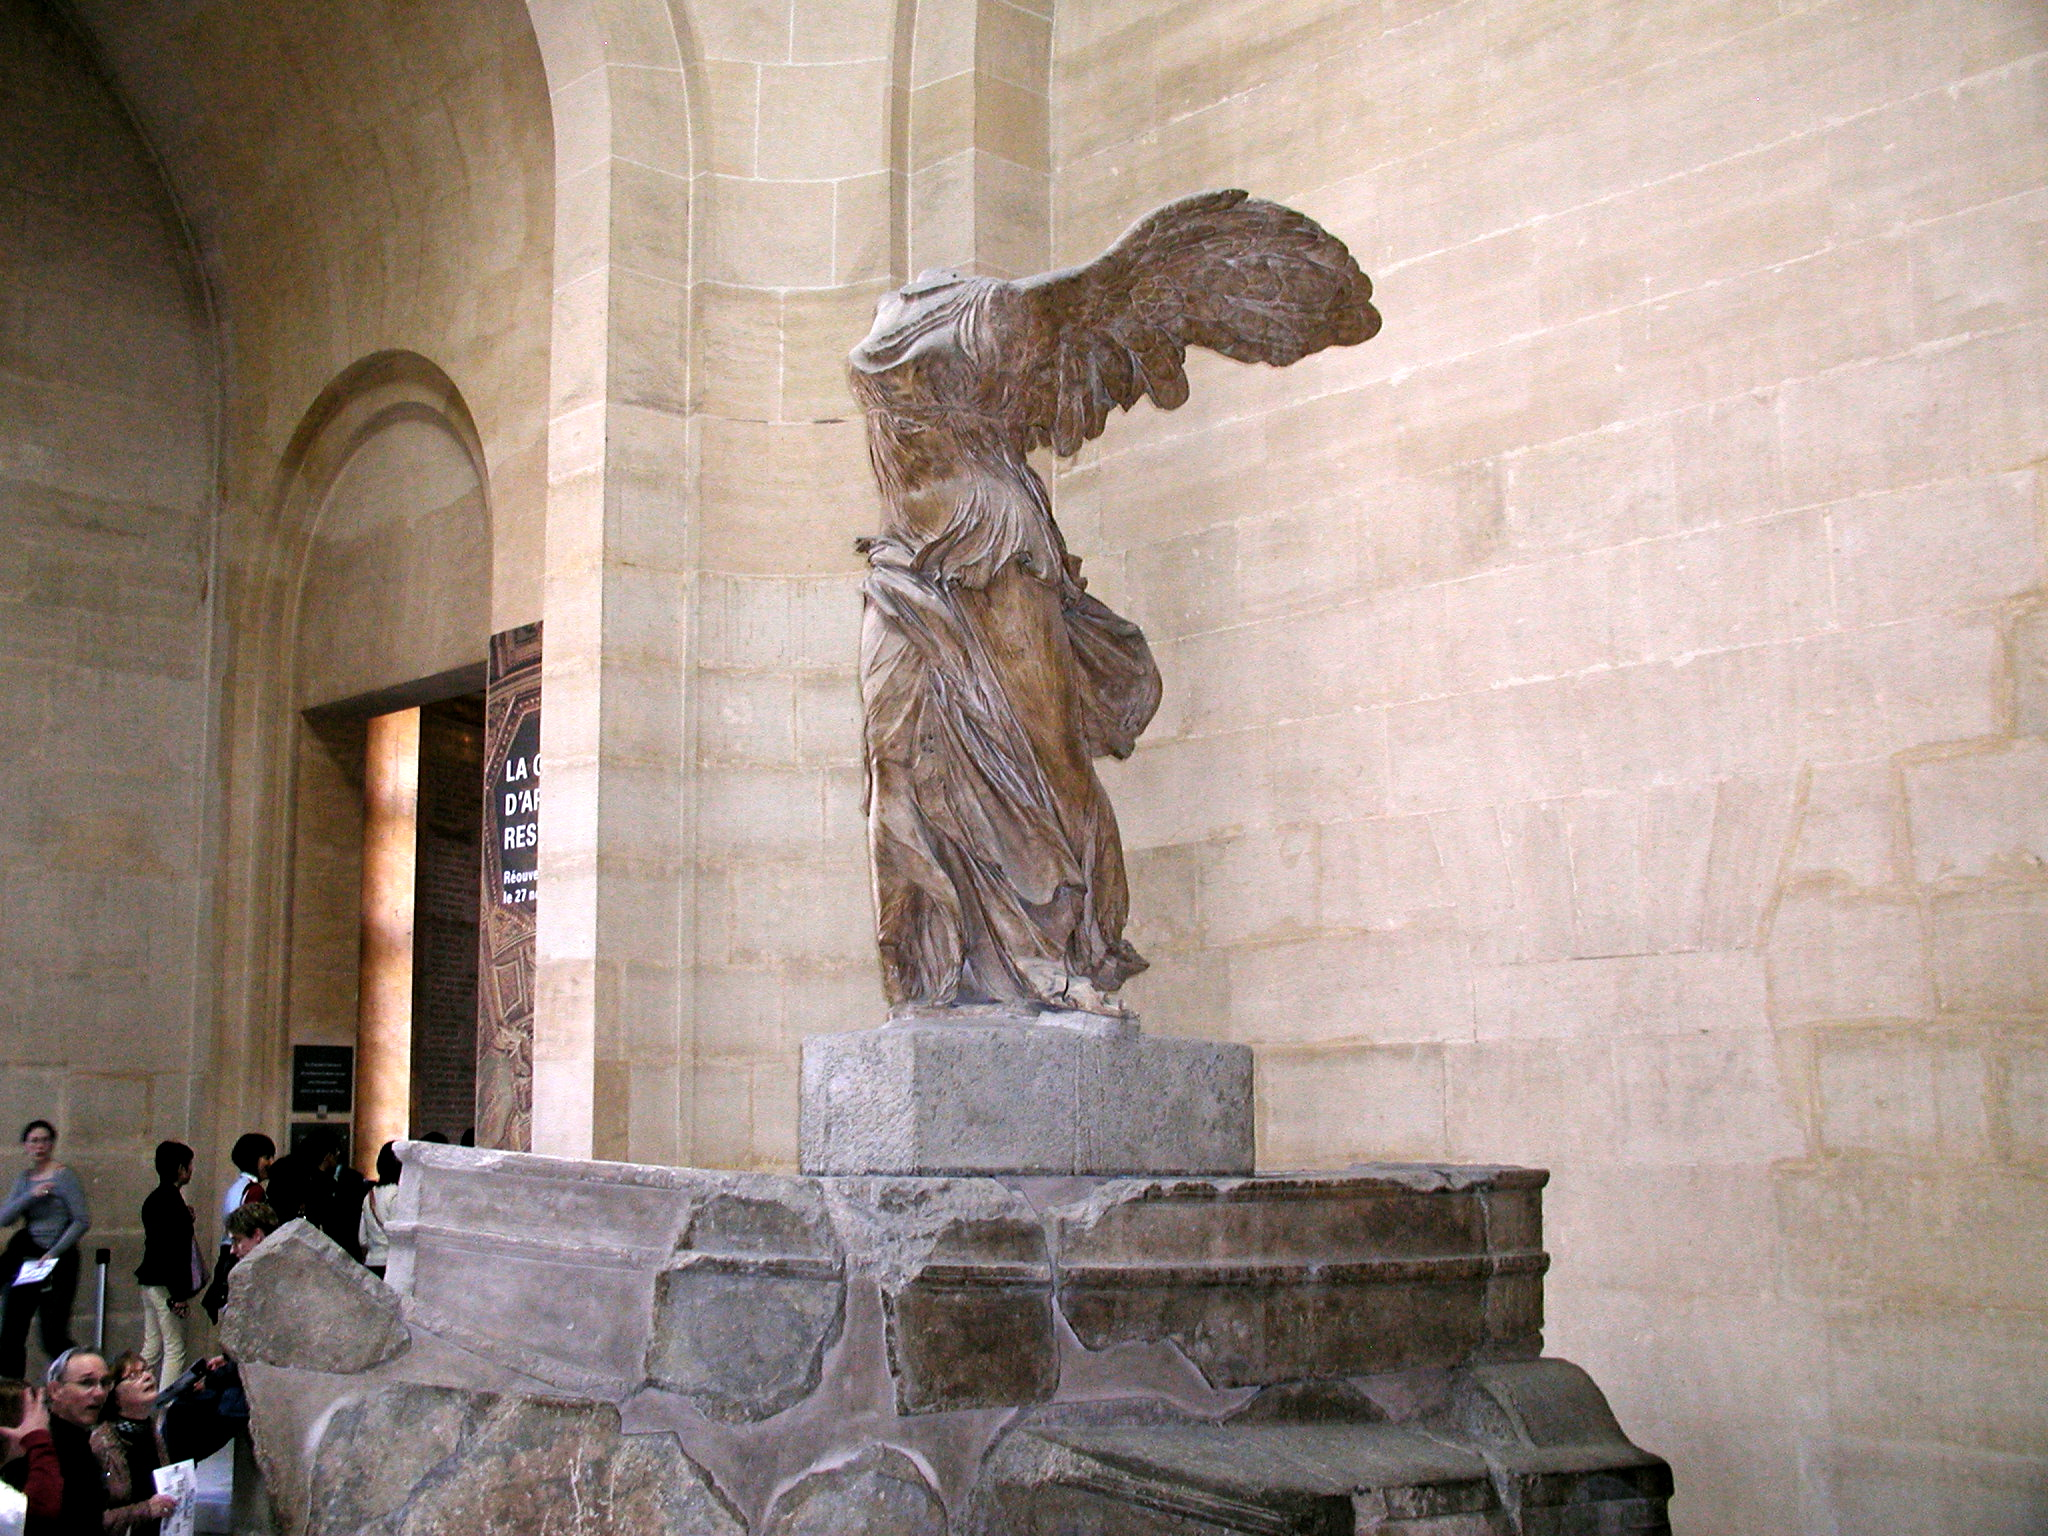 The Winged Victory